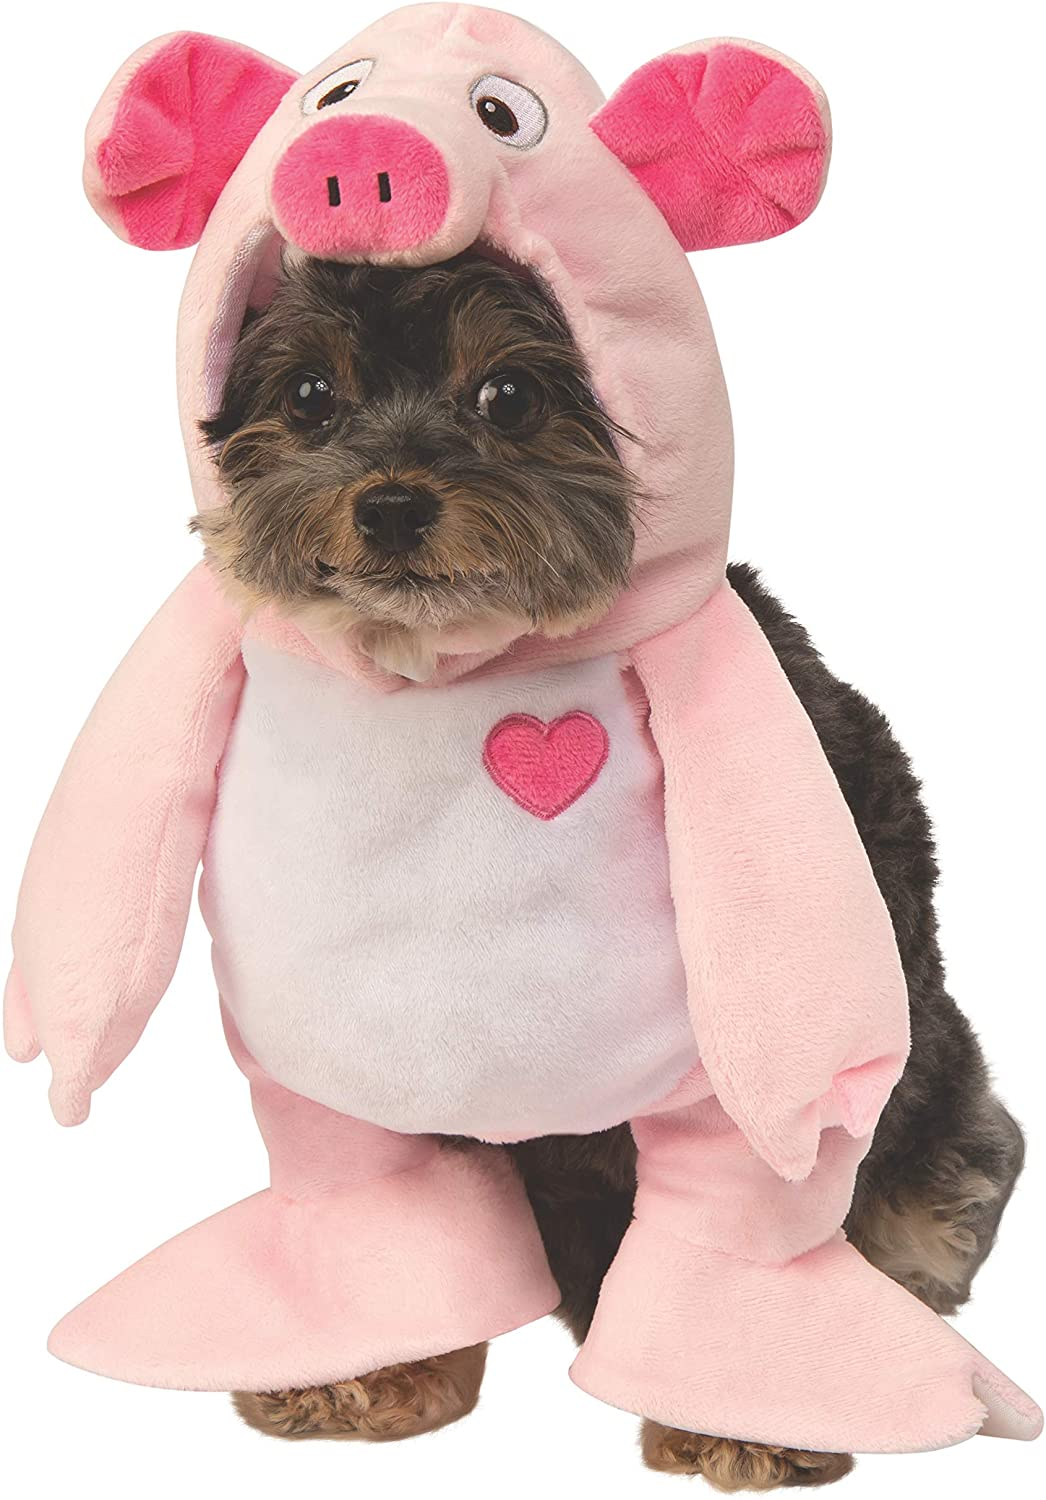 small dog wearing a pig dog costume